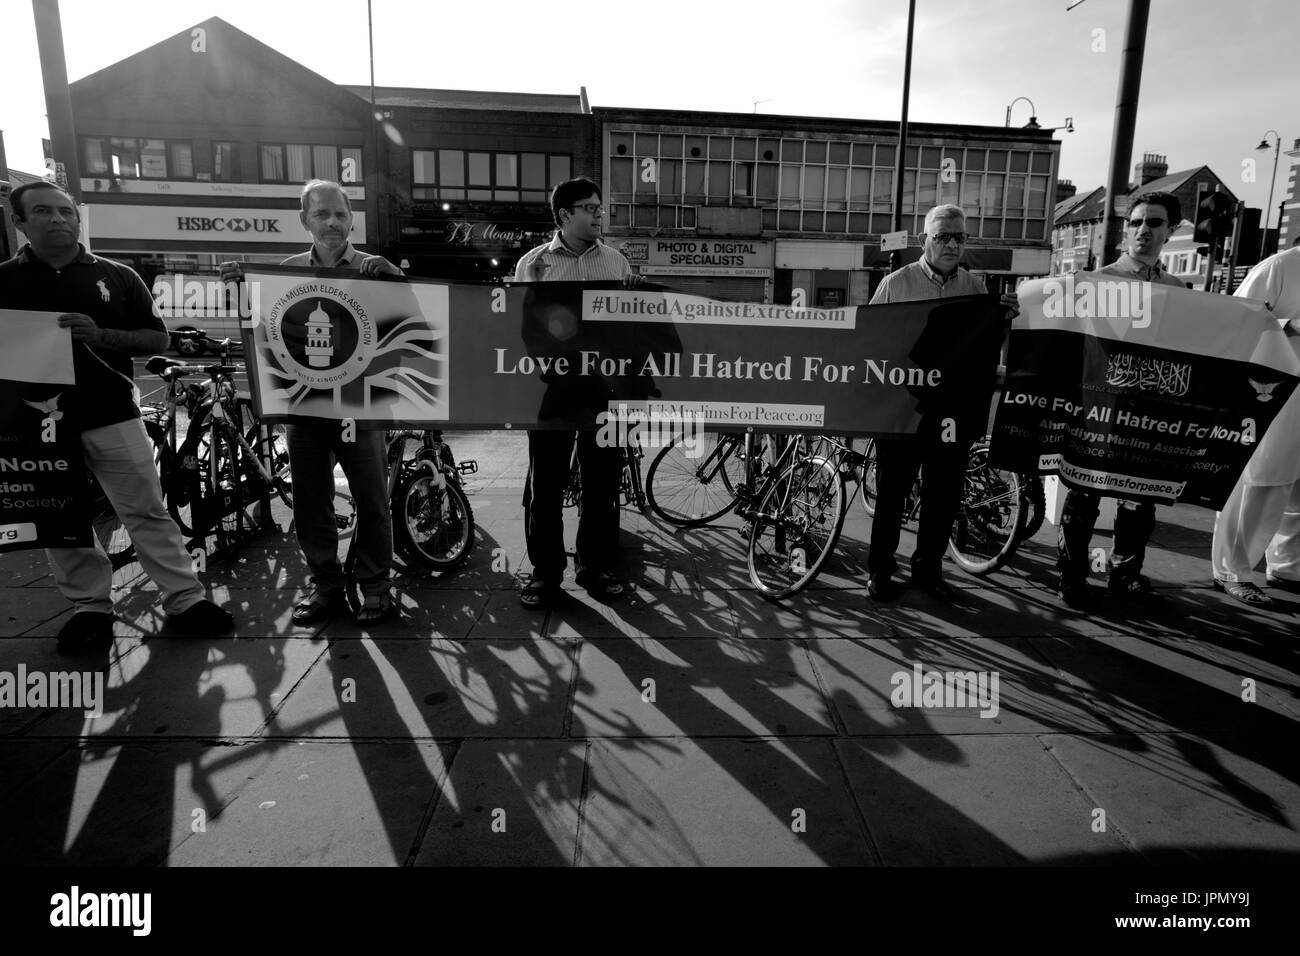 Vigil for Peace at Tooting Broadway Station - Stock Image